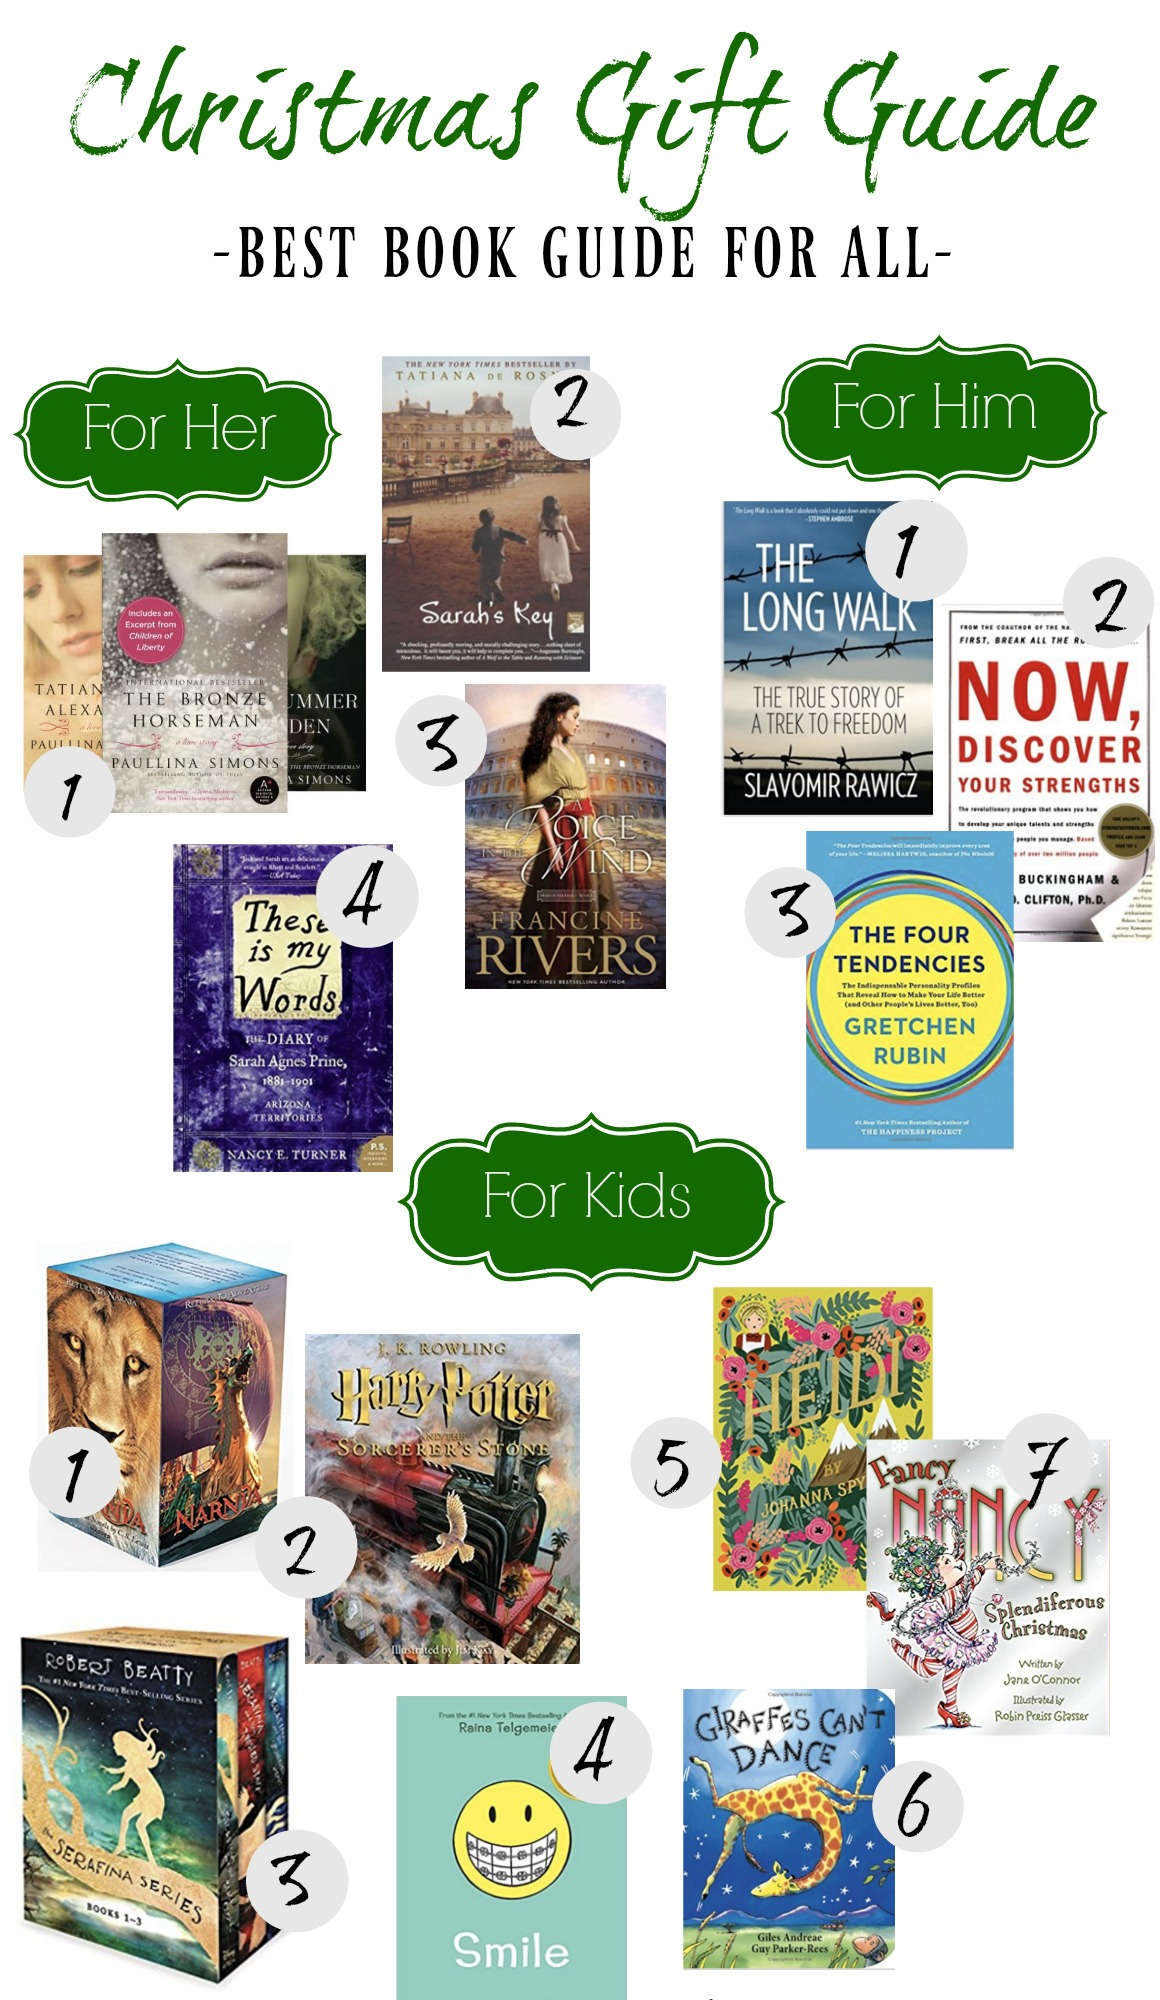 Christmas Gift Guide For Readers- Top Book for Her, Him and Kids